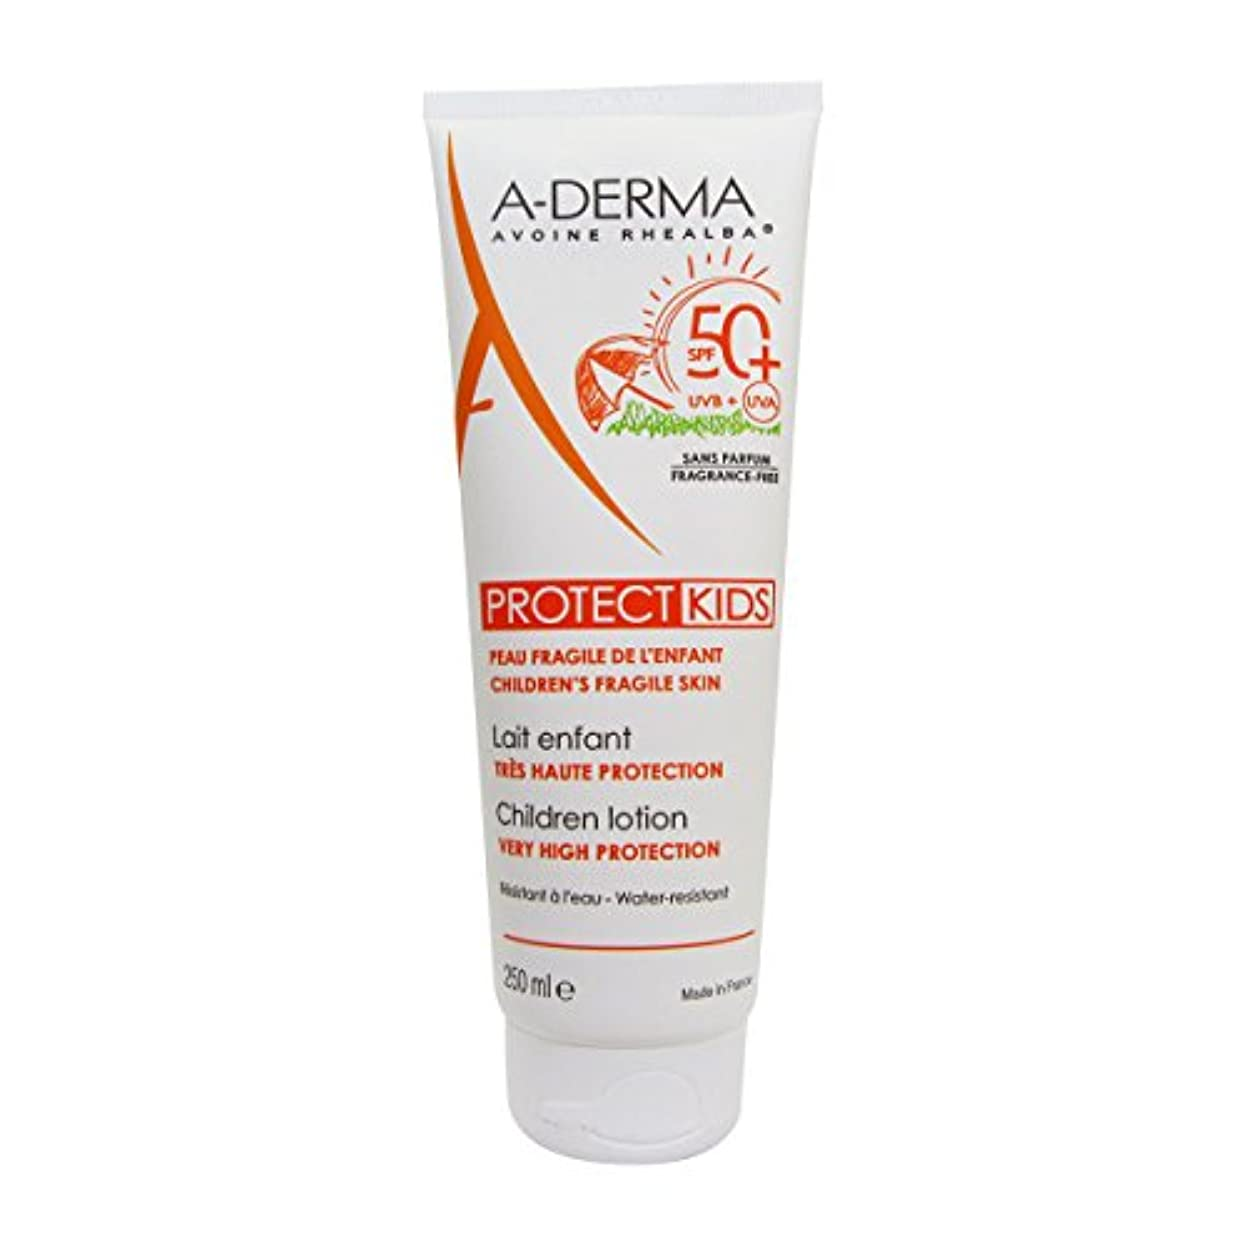 A-derma Protect Kids Lotion Spf50+ 200ml [並行輸入品]